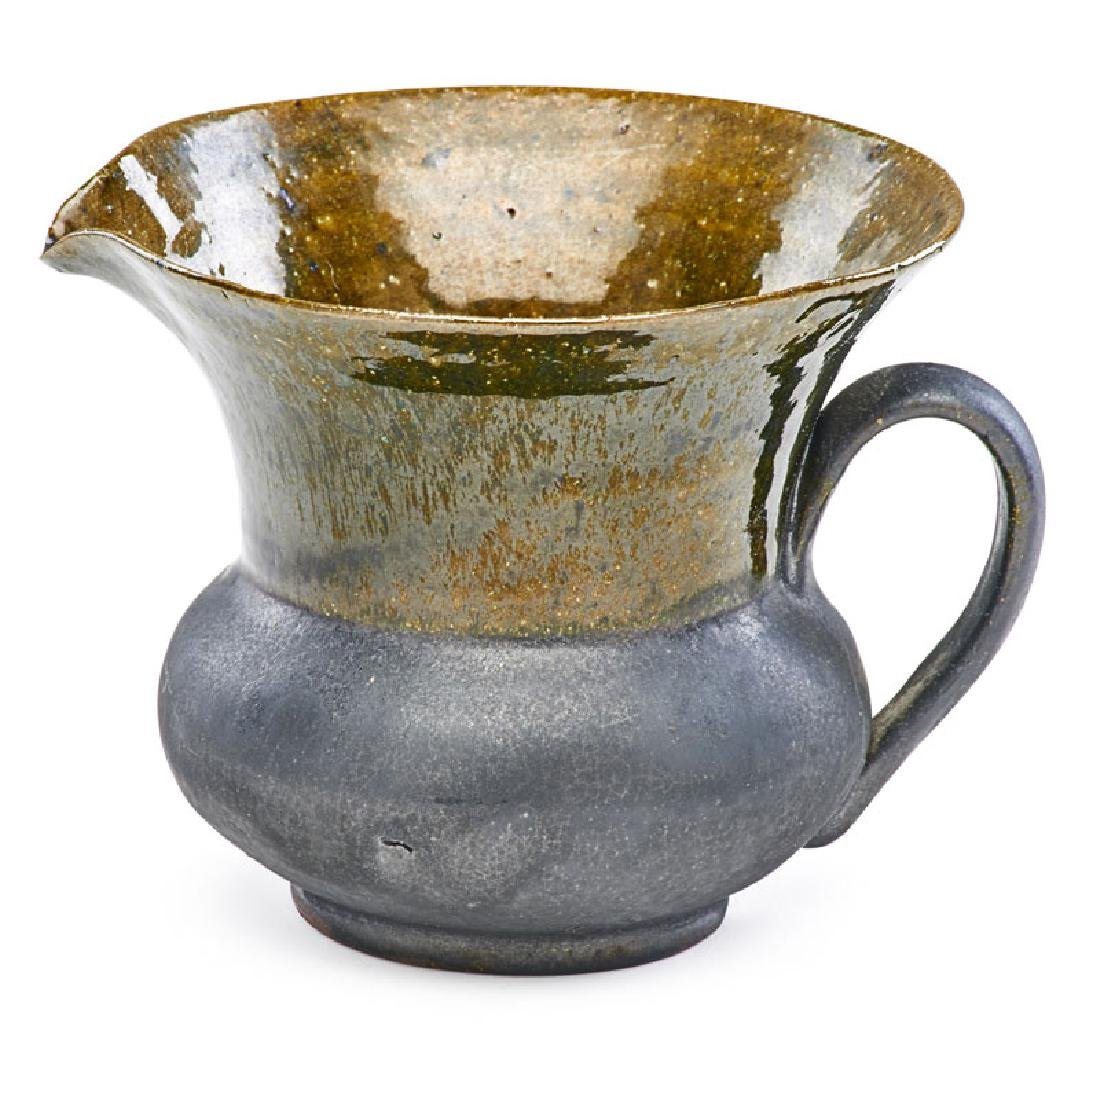 GEORGE OHR Flared pitcher